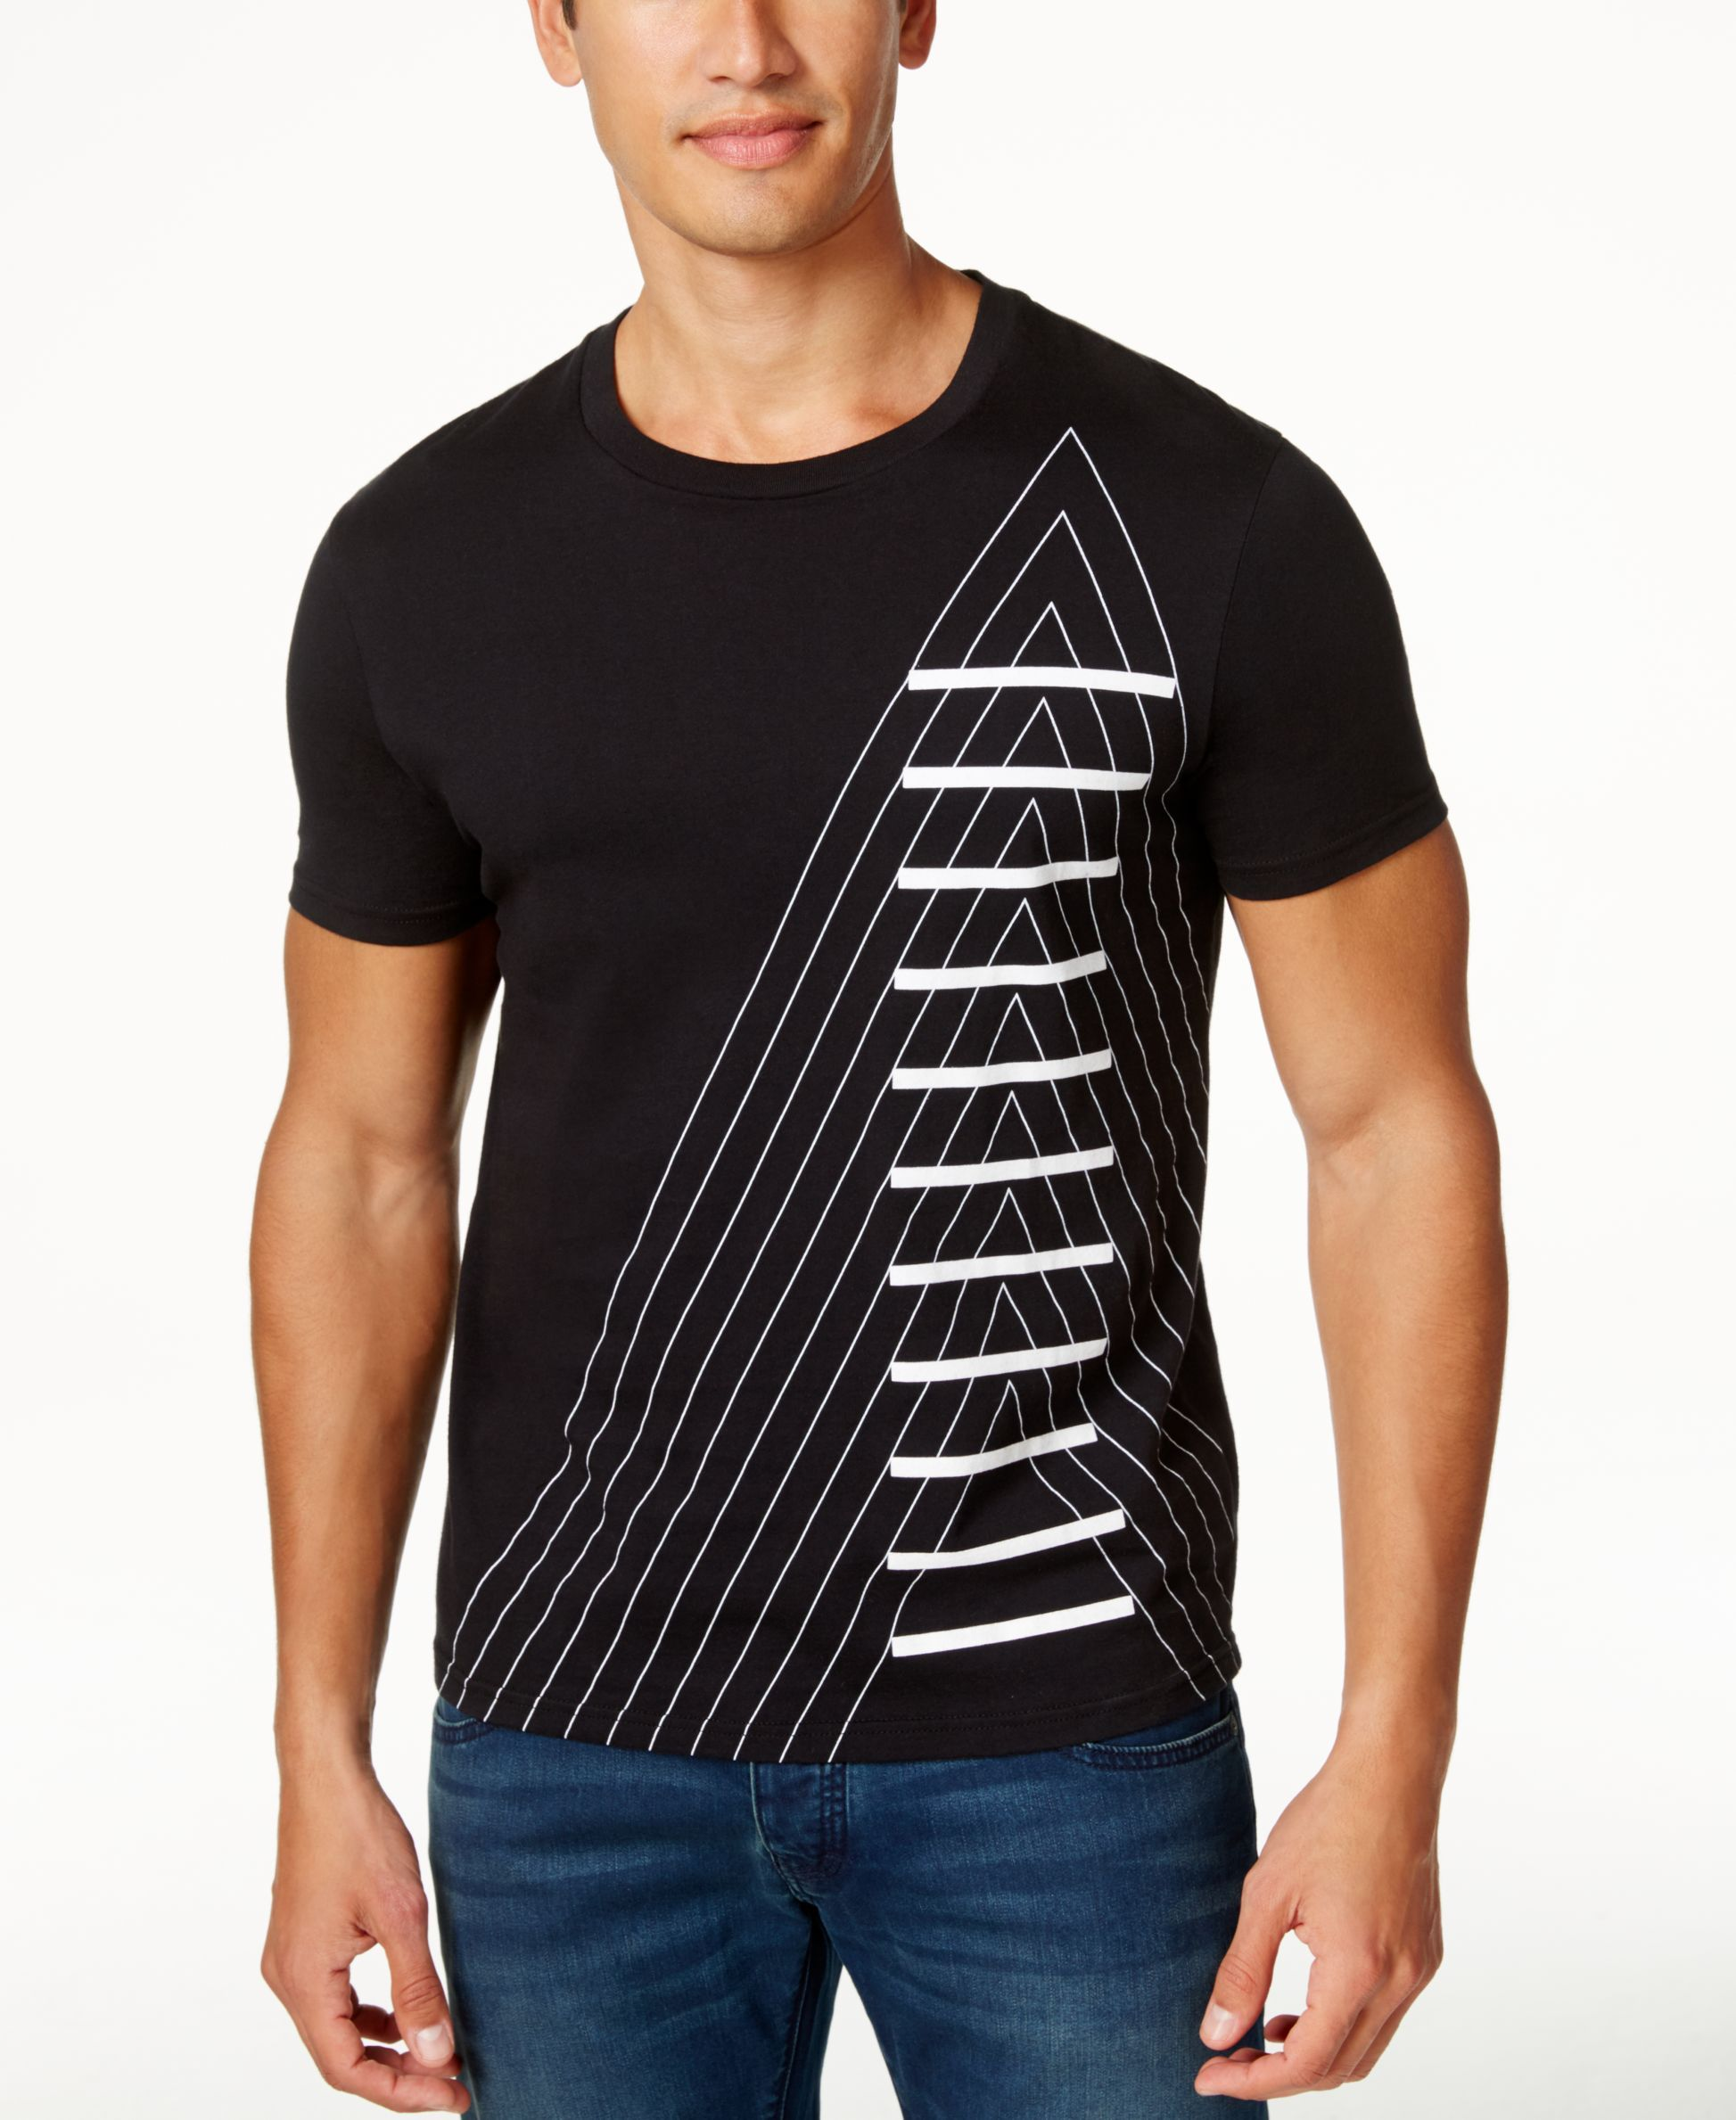 fc37ef42b2 Armani Exchange Men's A-Stacked Graphic-Print T-Shirt | Men's Style ...